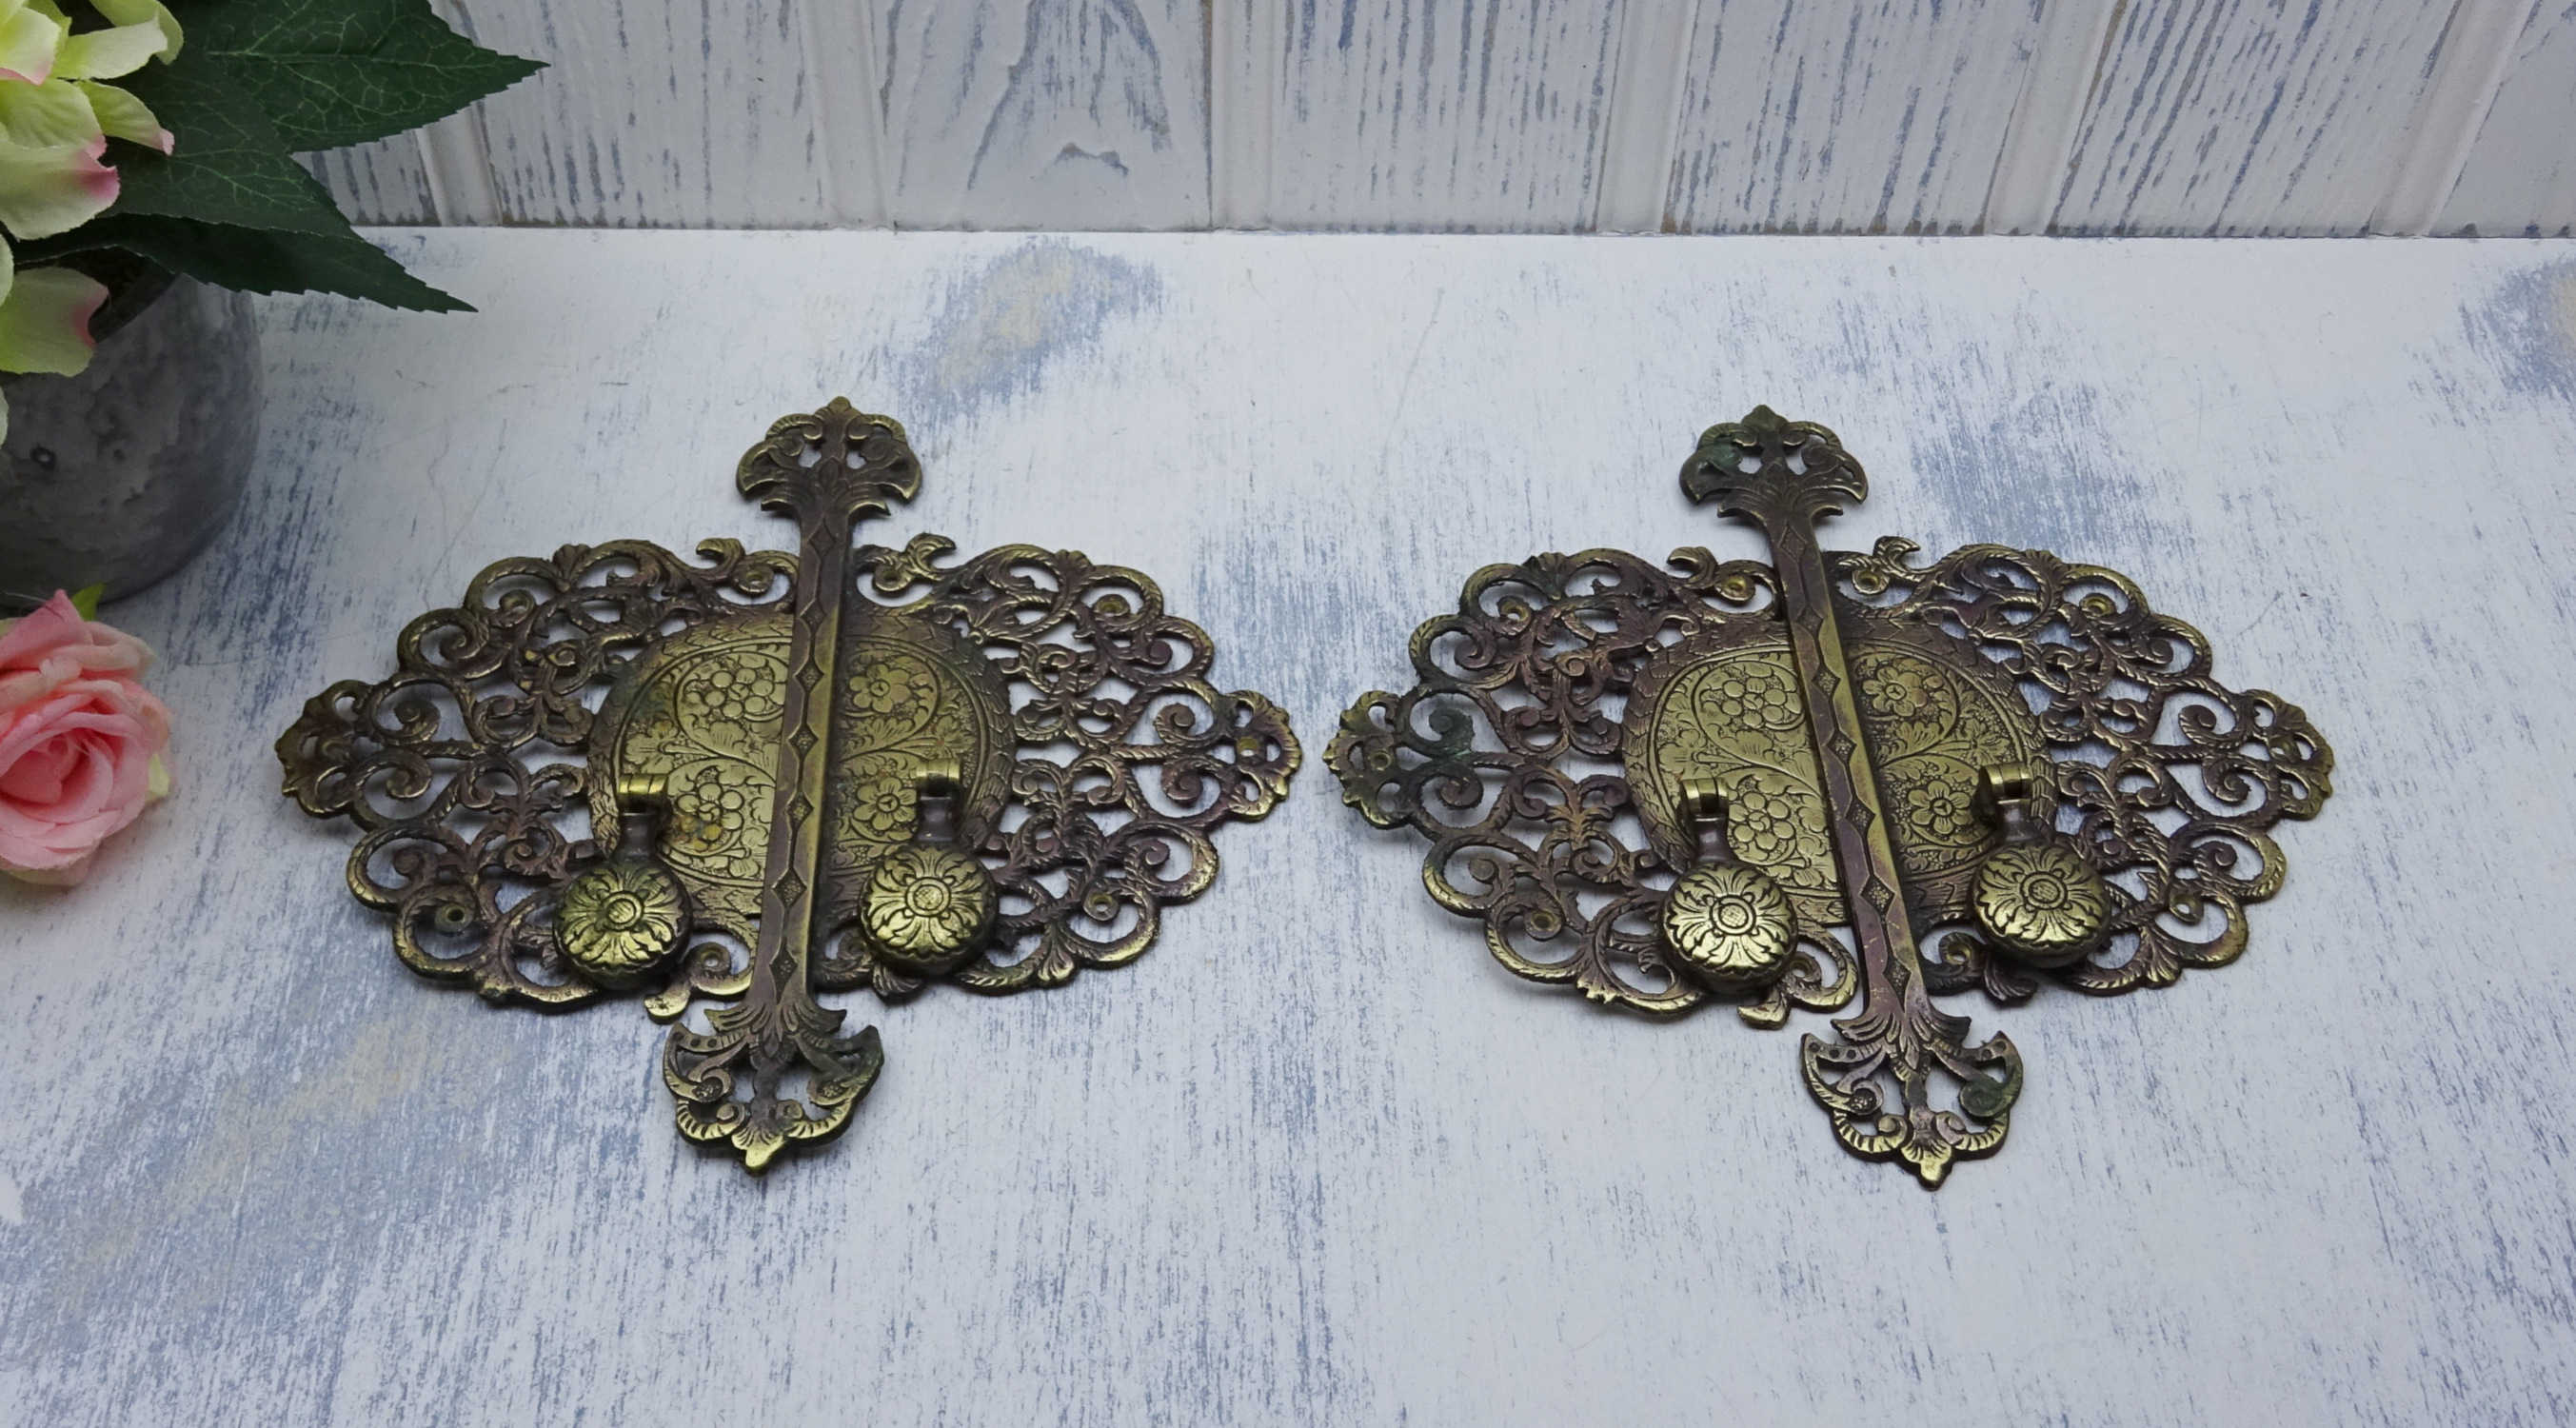 Early 20th Century Ornate Brass Cabinet Handles Showpiece